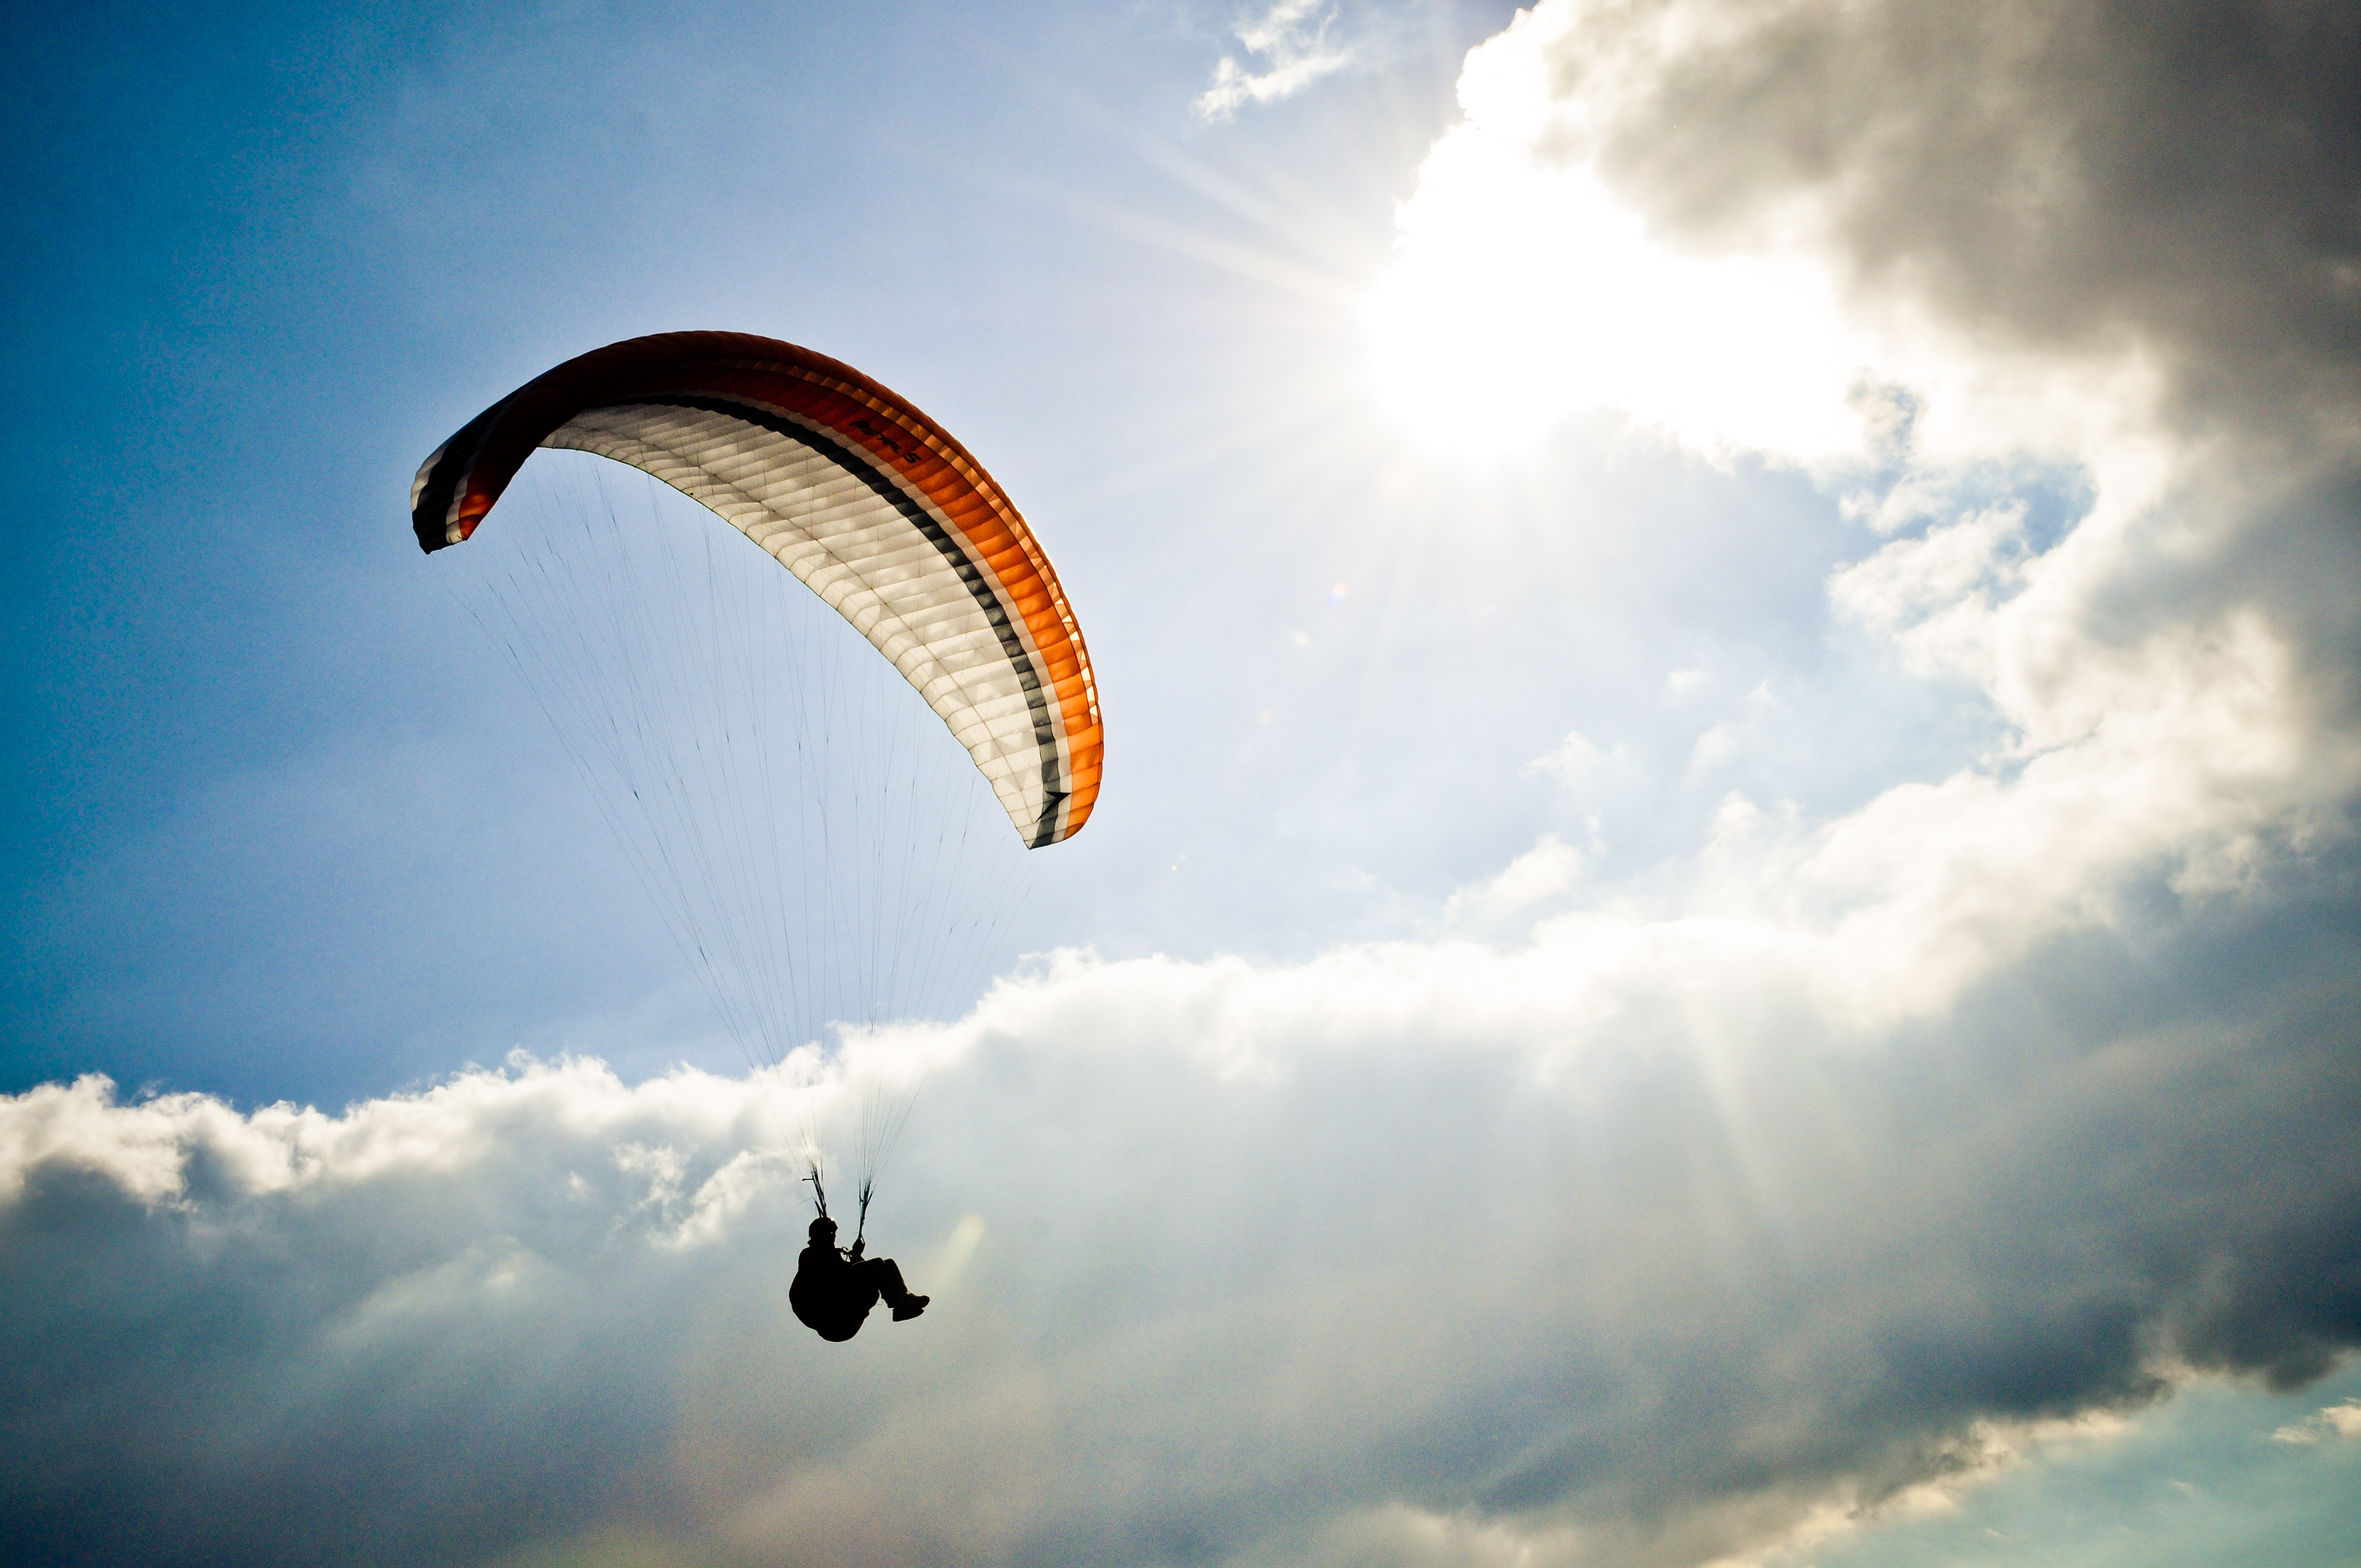 stockvault-paraglider-in-sky138851